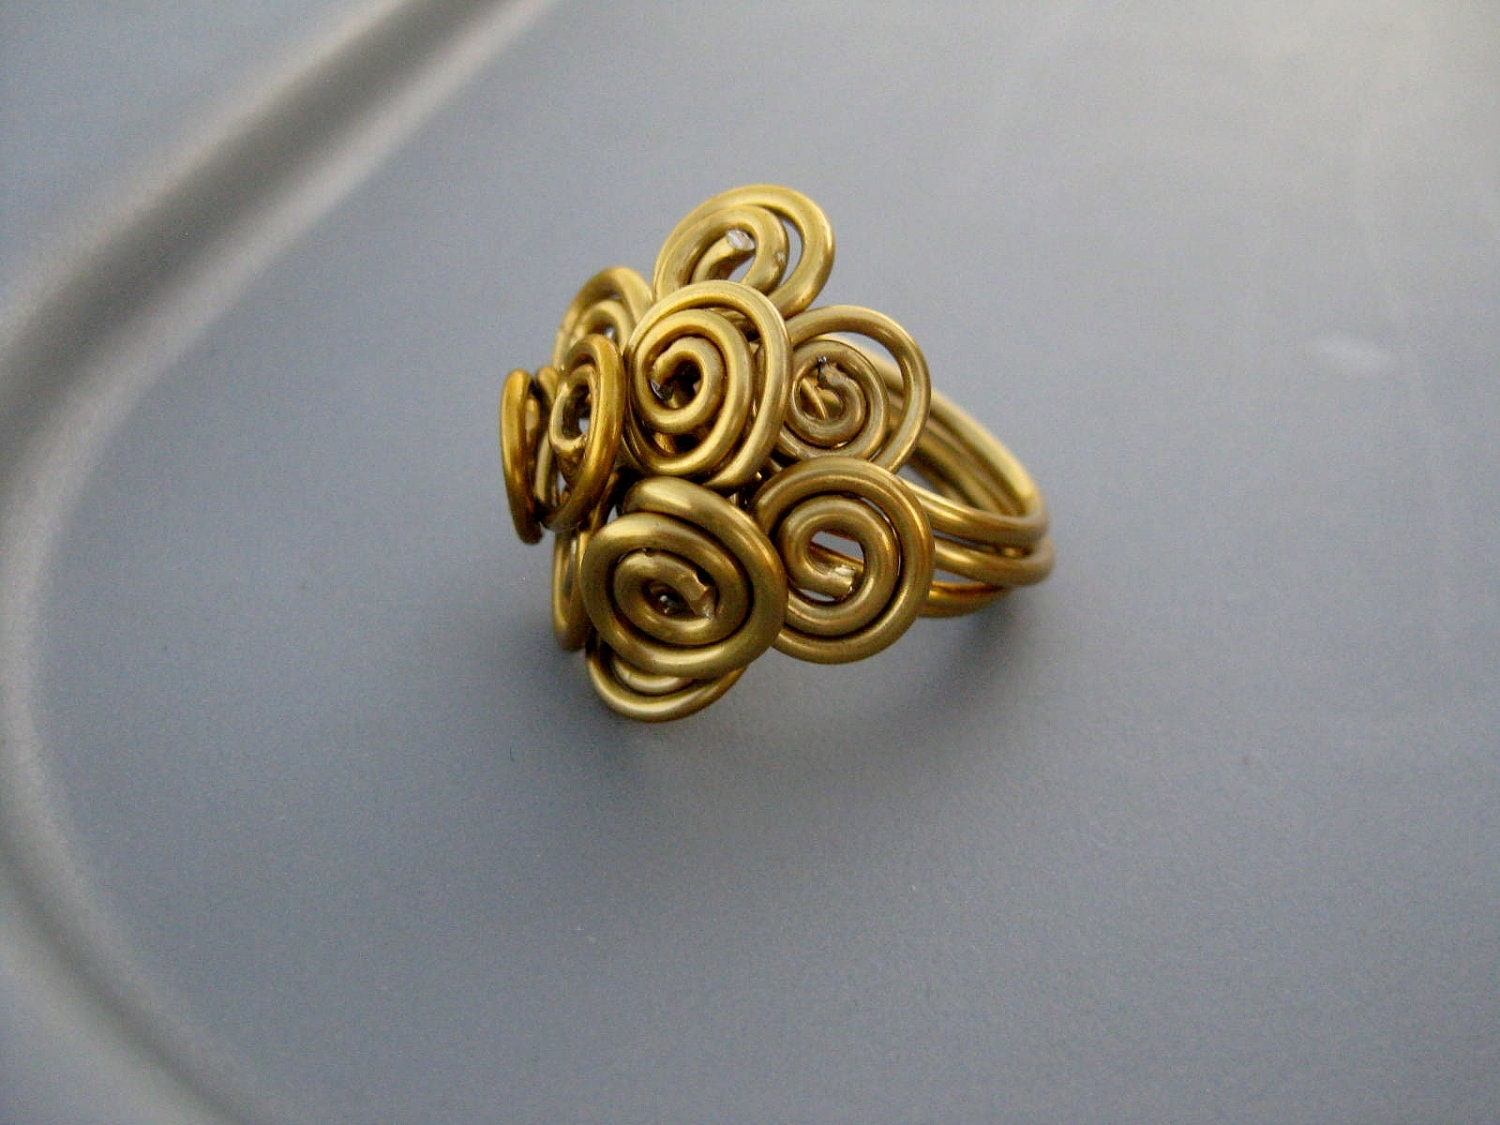 Bold Goddess Gold Tone Anodized Aluminum Wire Spiral Cluster